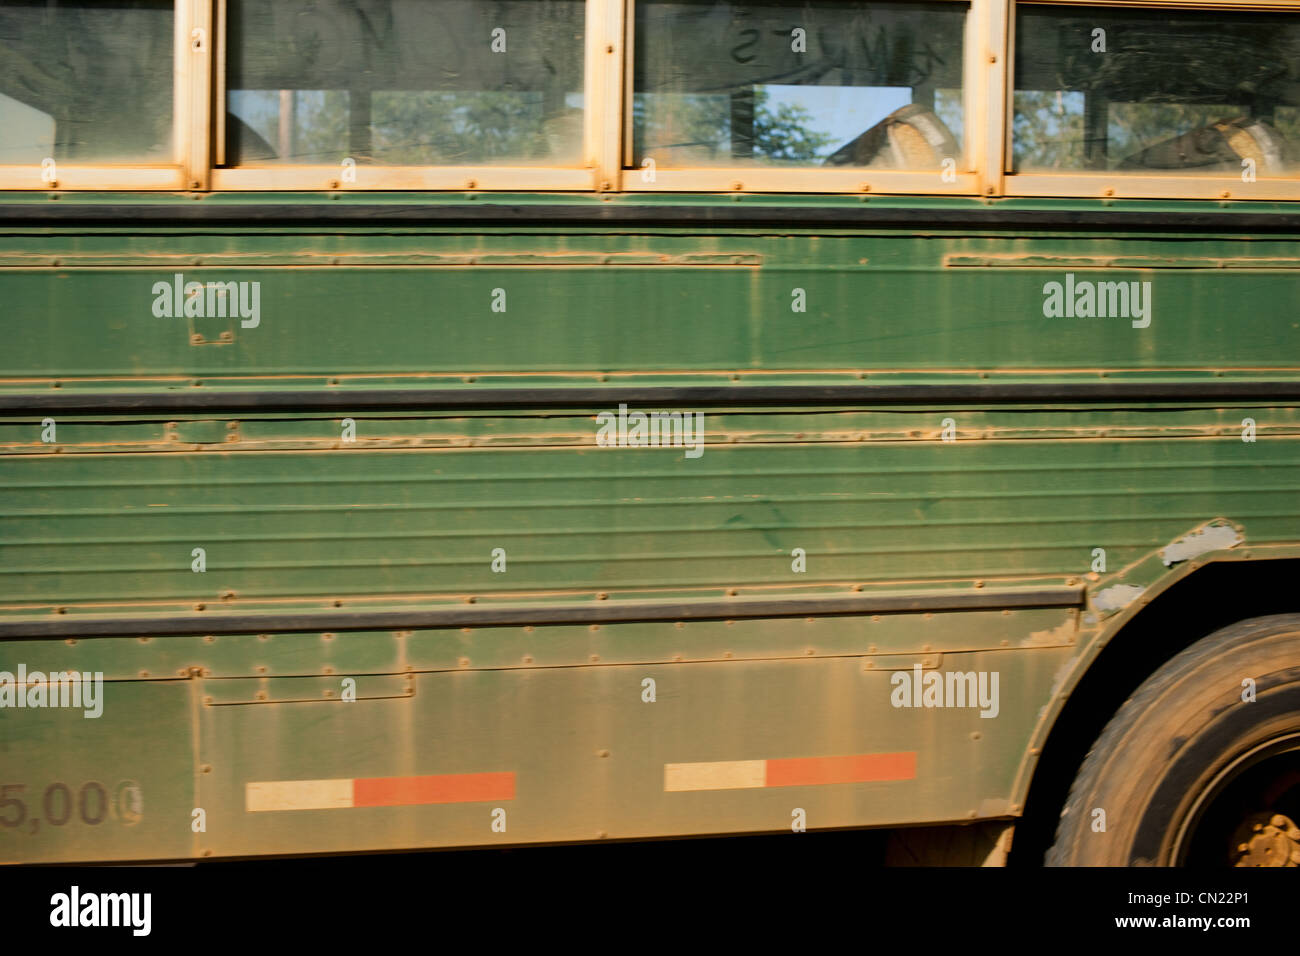 Dusty green bus, side view - Stock Image